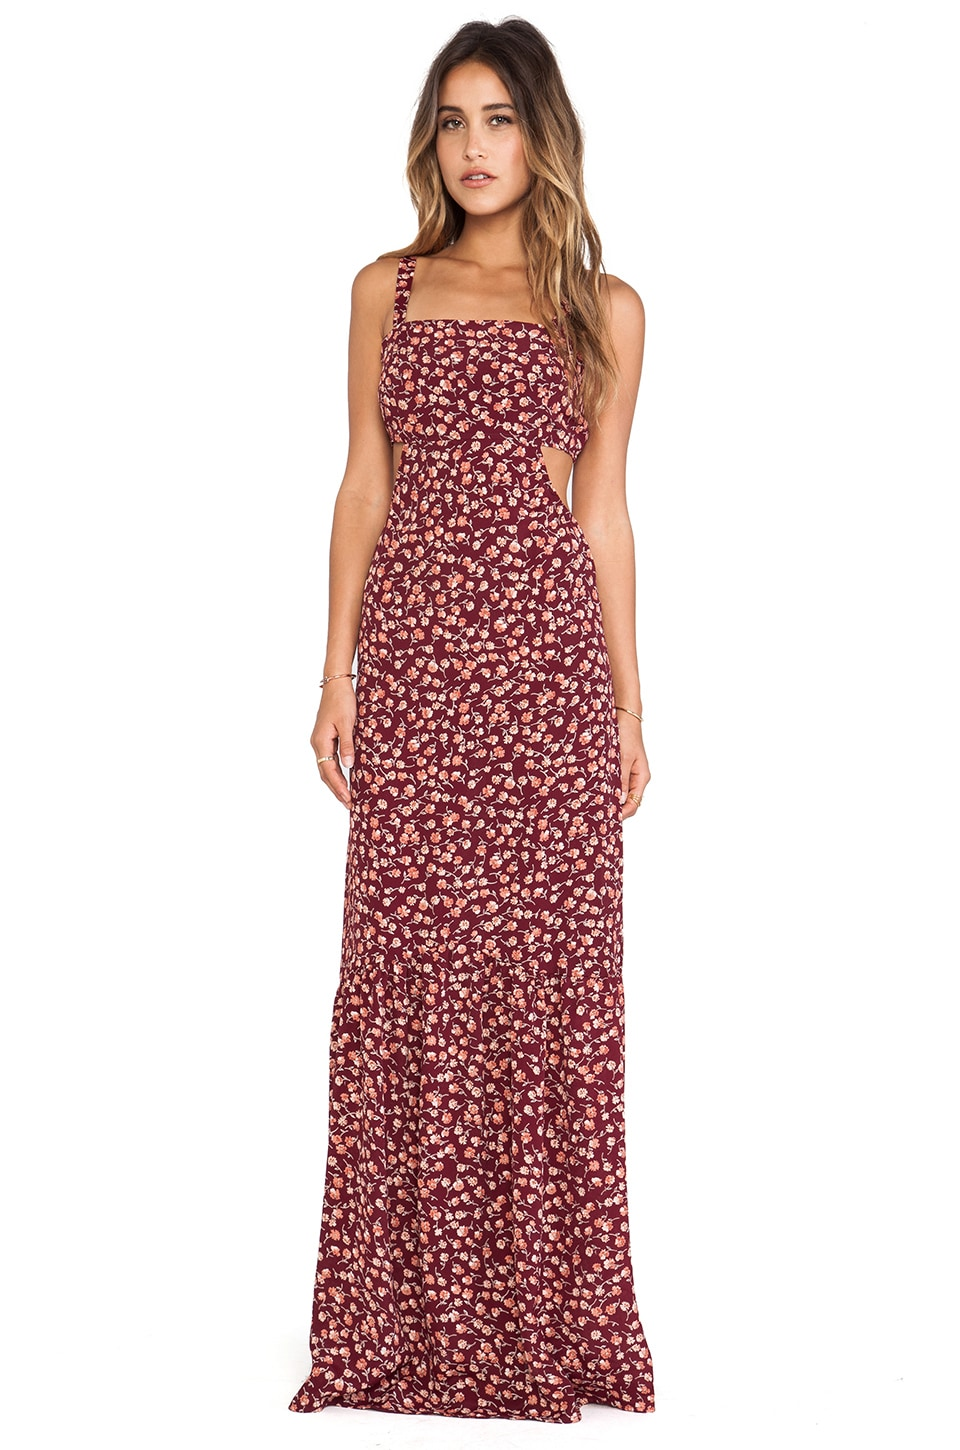 FLYNN SKYE Farrah Maxi Dress in Rusty Dawn